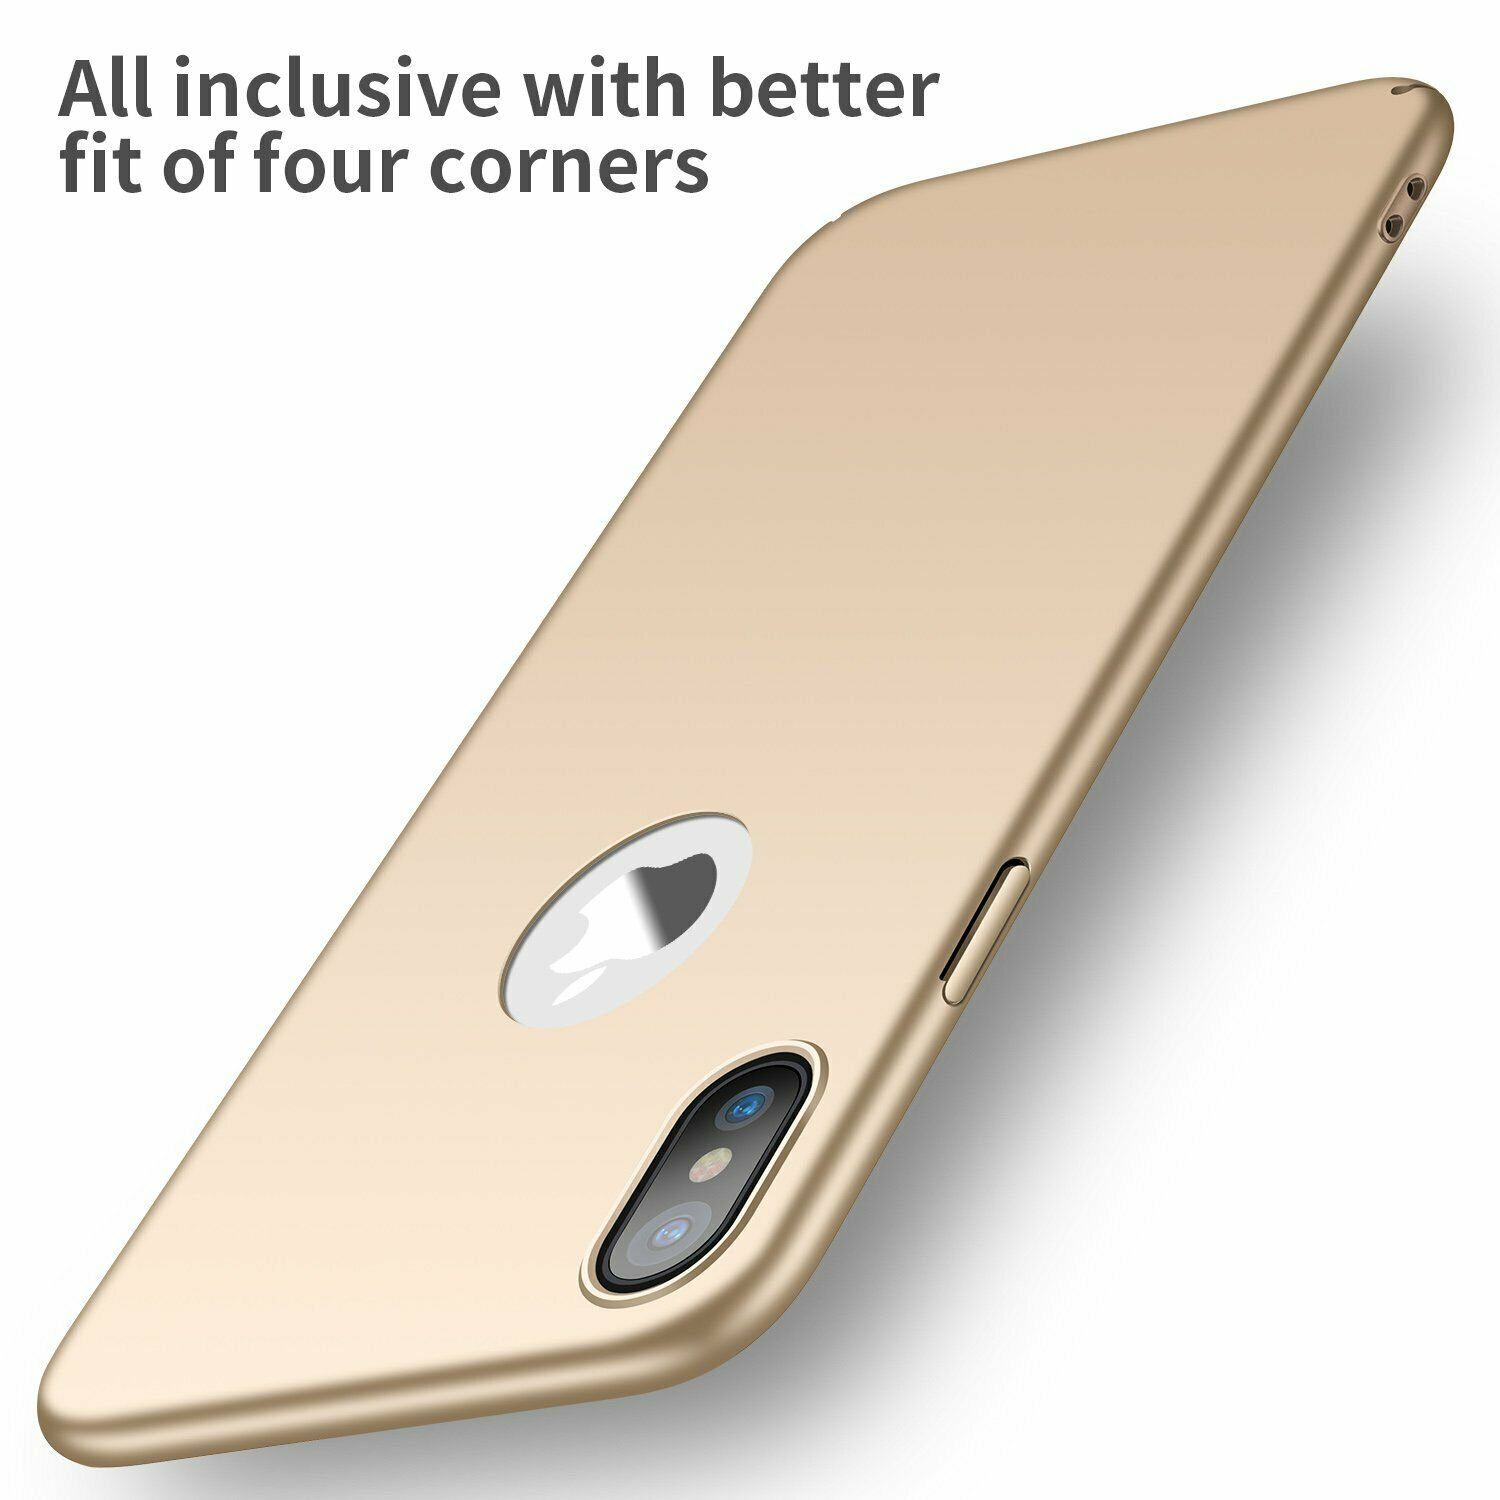 For-iPhone-X-XR-XS-Max-Matte-Case-Shockproof-Ultra-Thin-Slim-Hard-Cover thumbnail 34